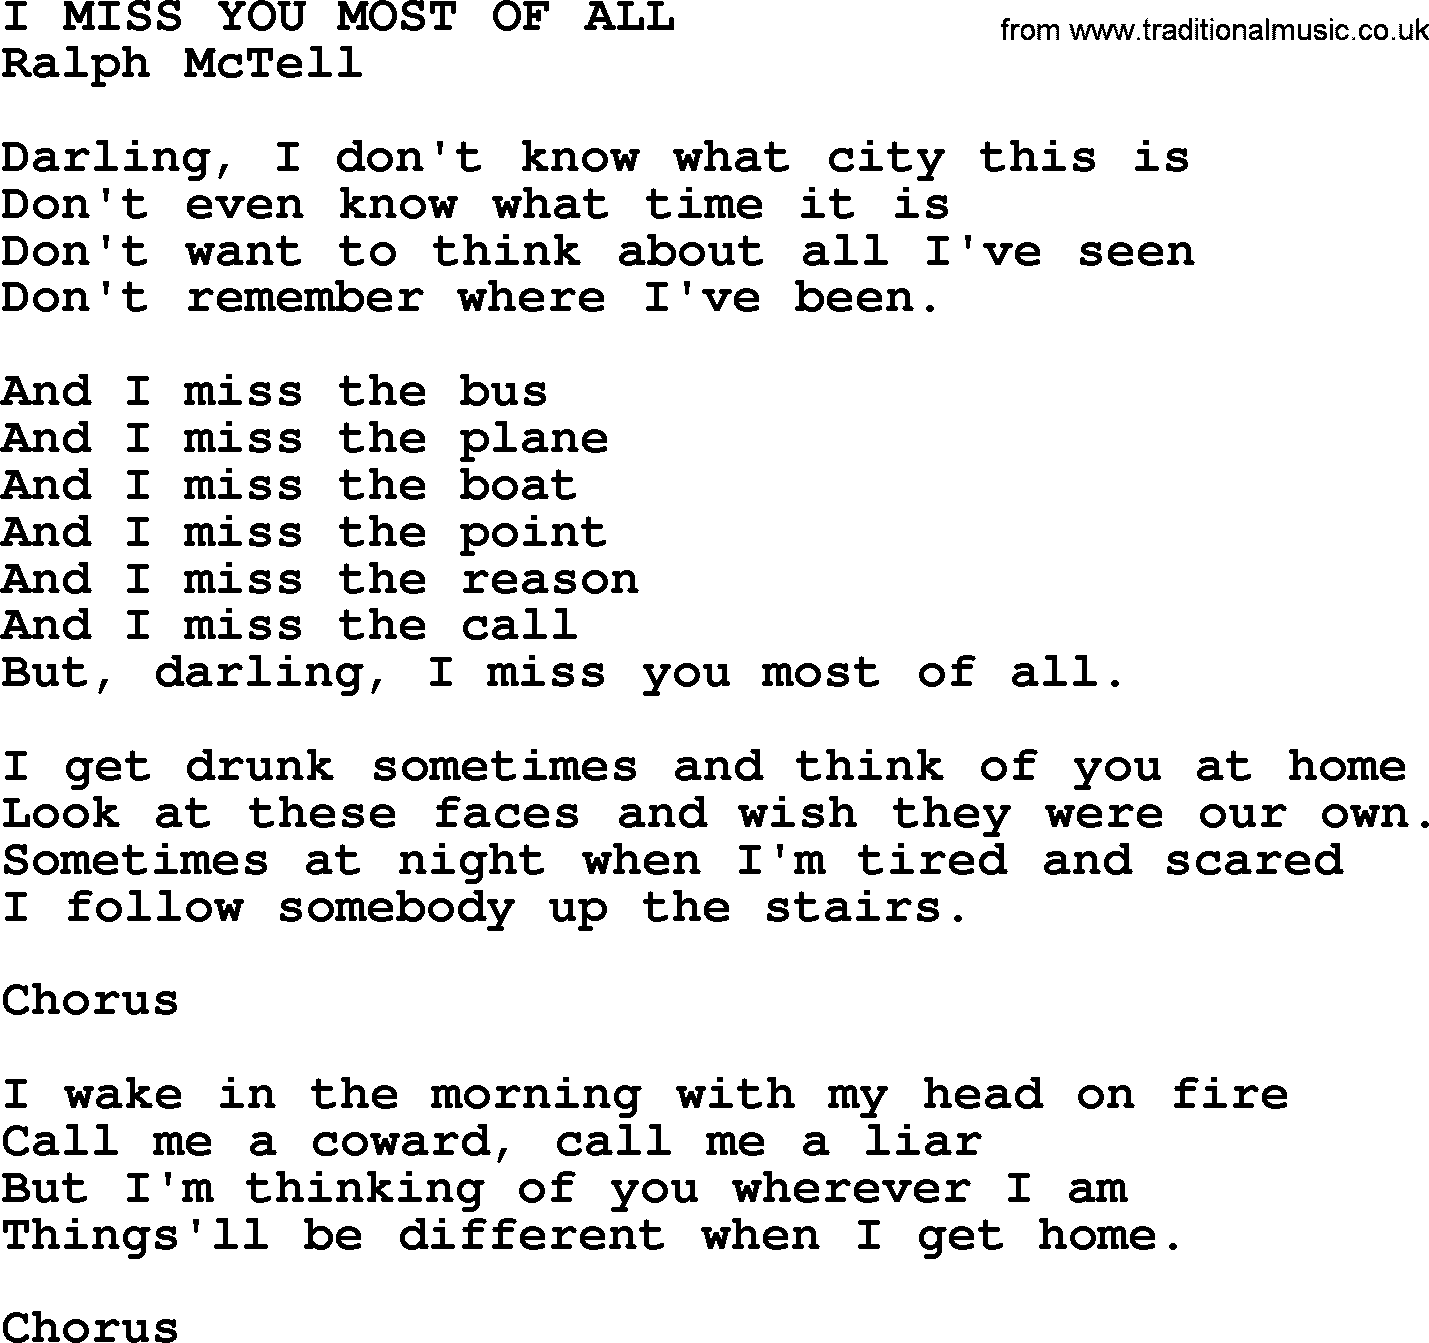 I Miss You Most Of Alltxt By Ralph Mctell Lyrics And Chords